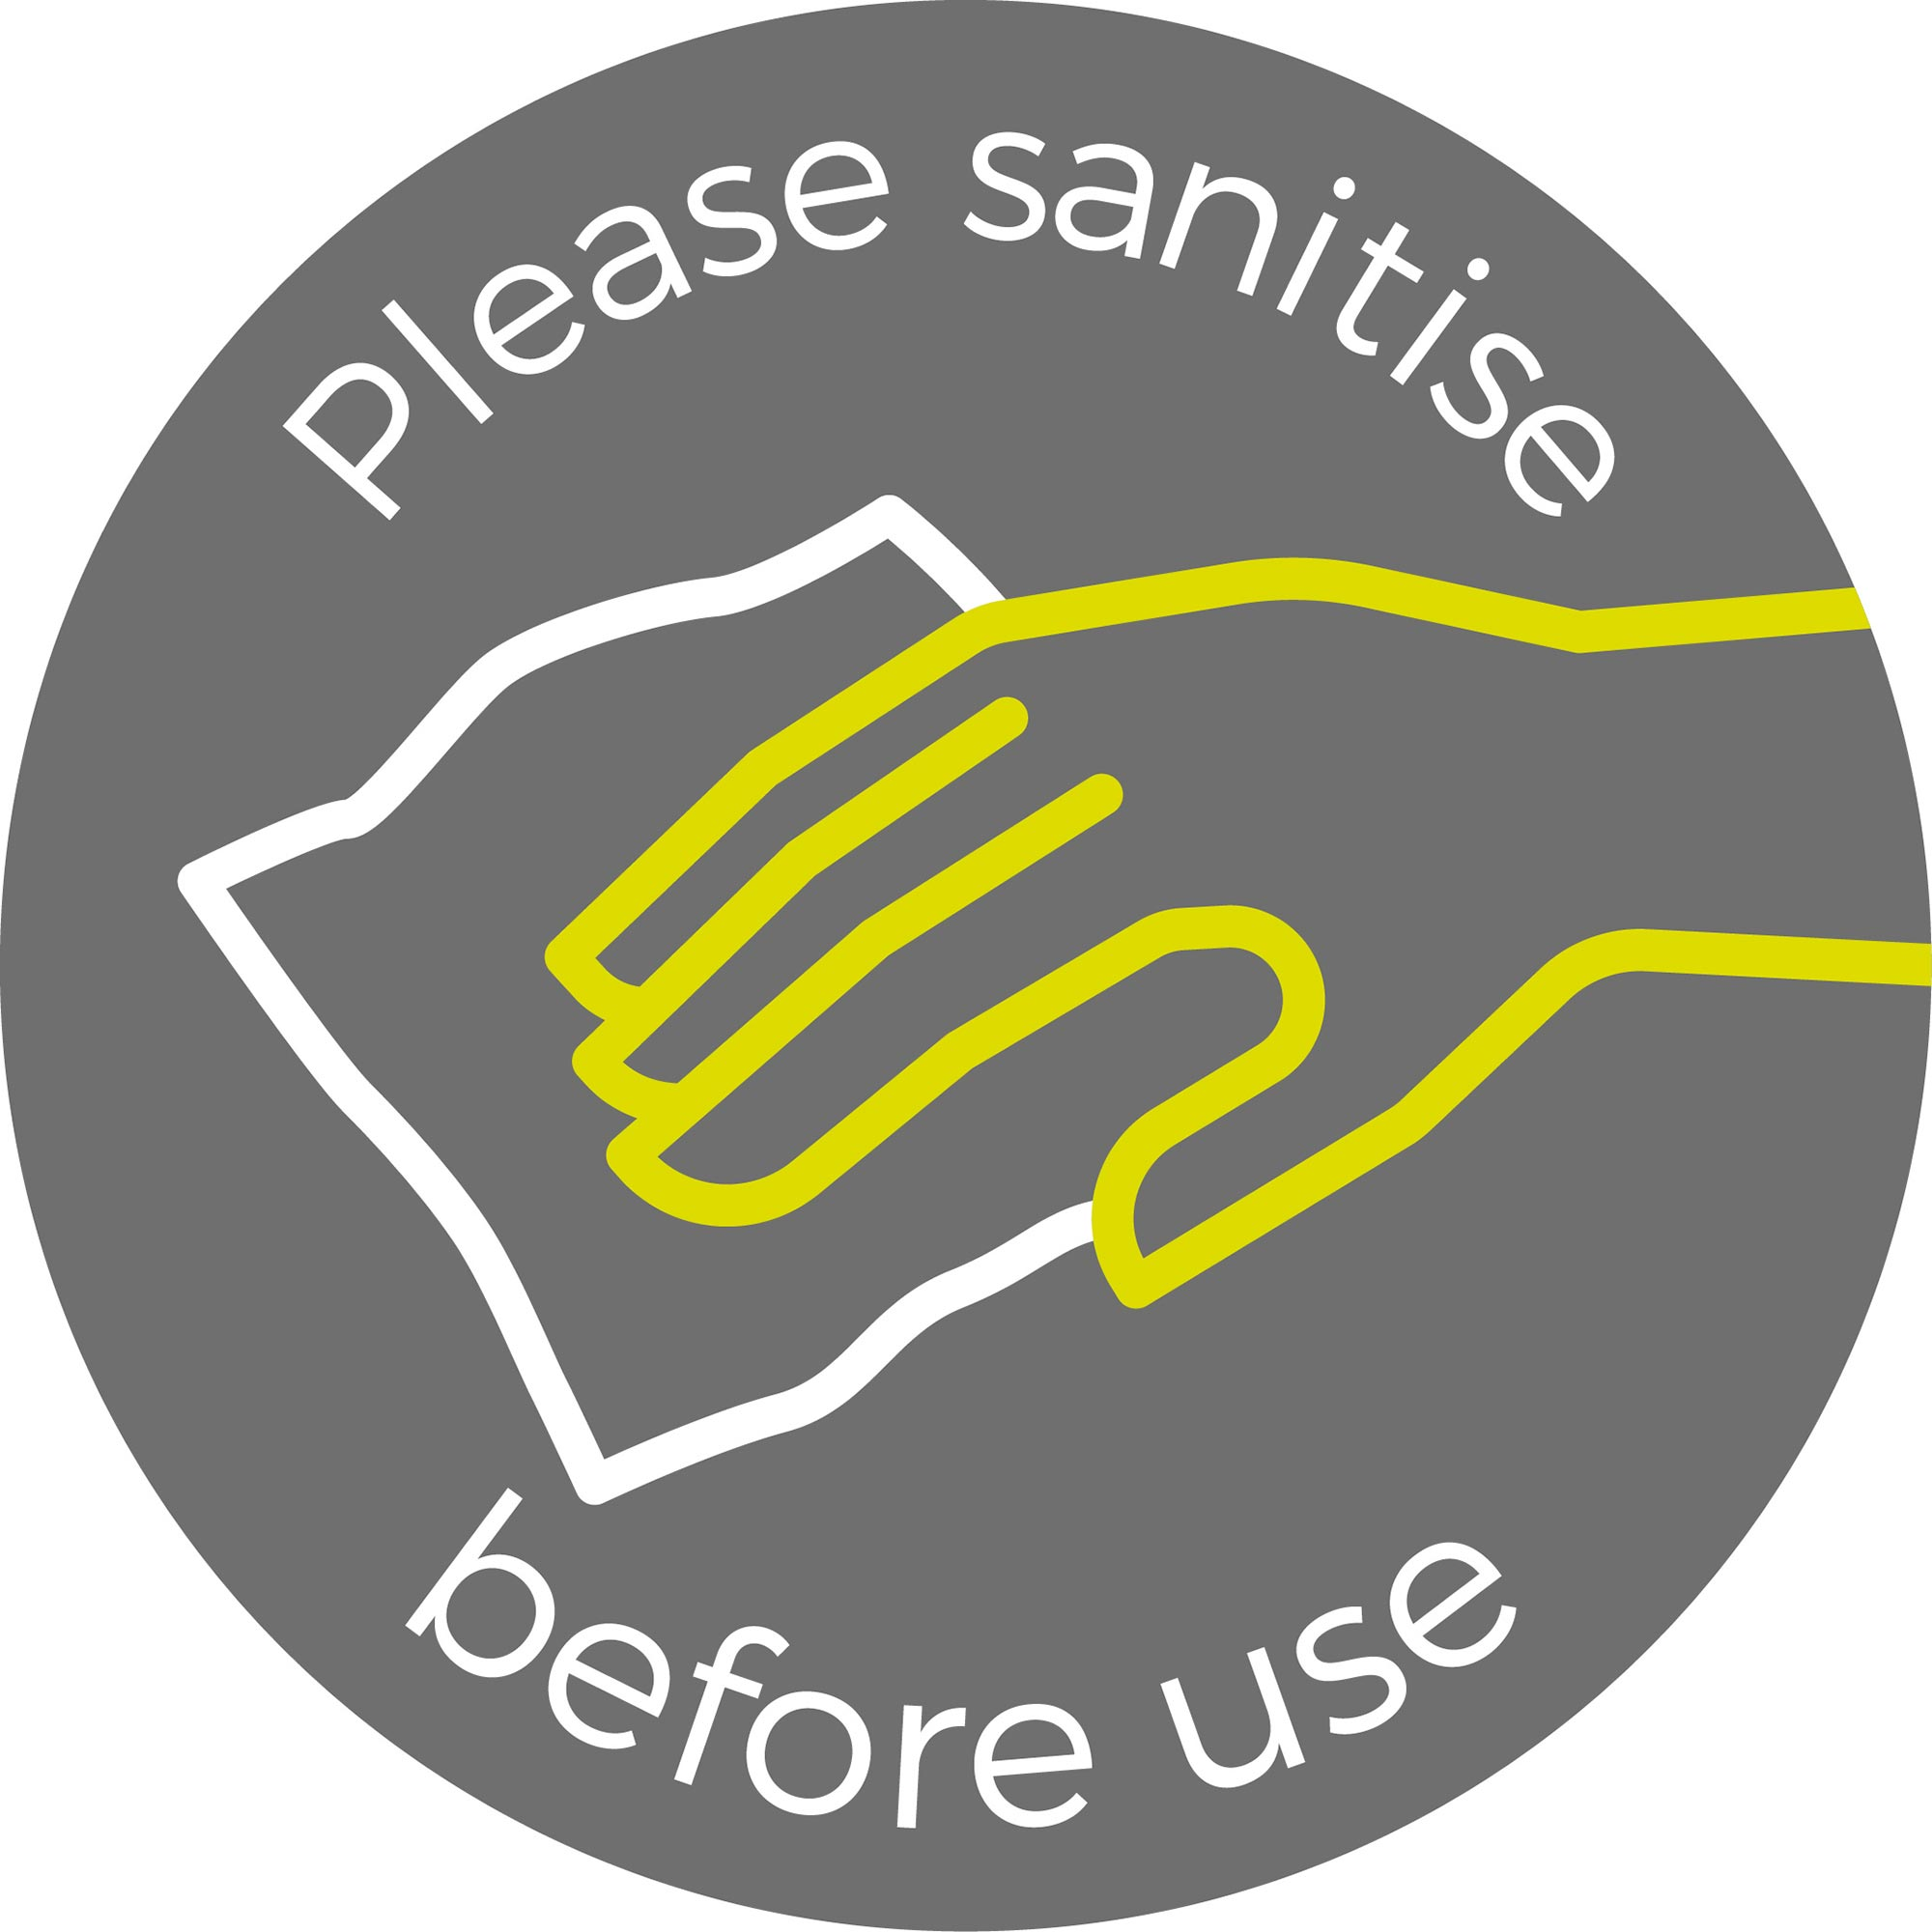 Please Sanitise - Grey Sticker